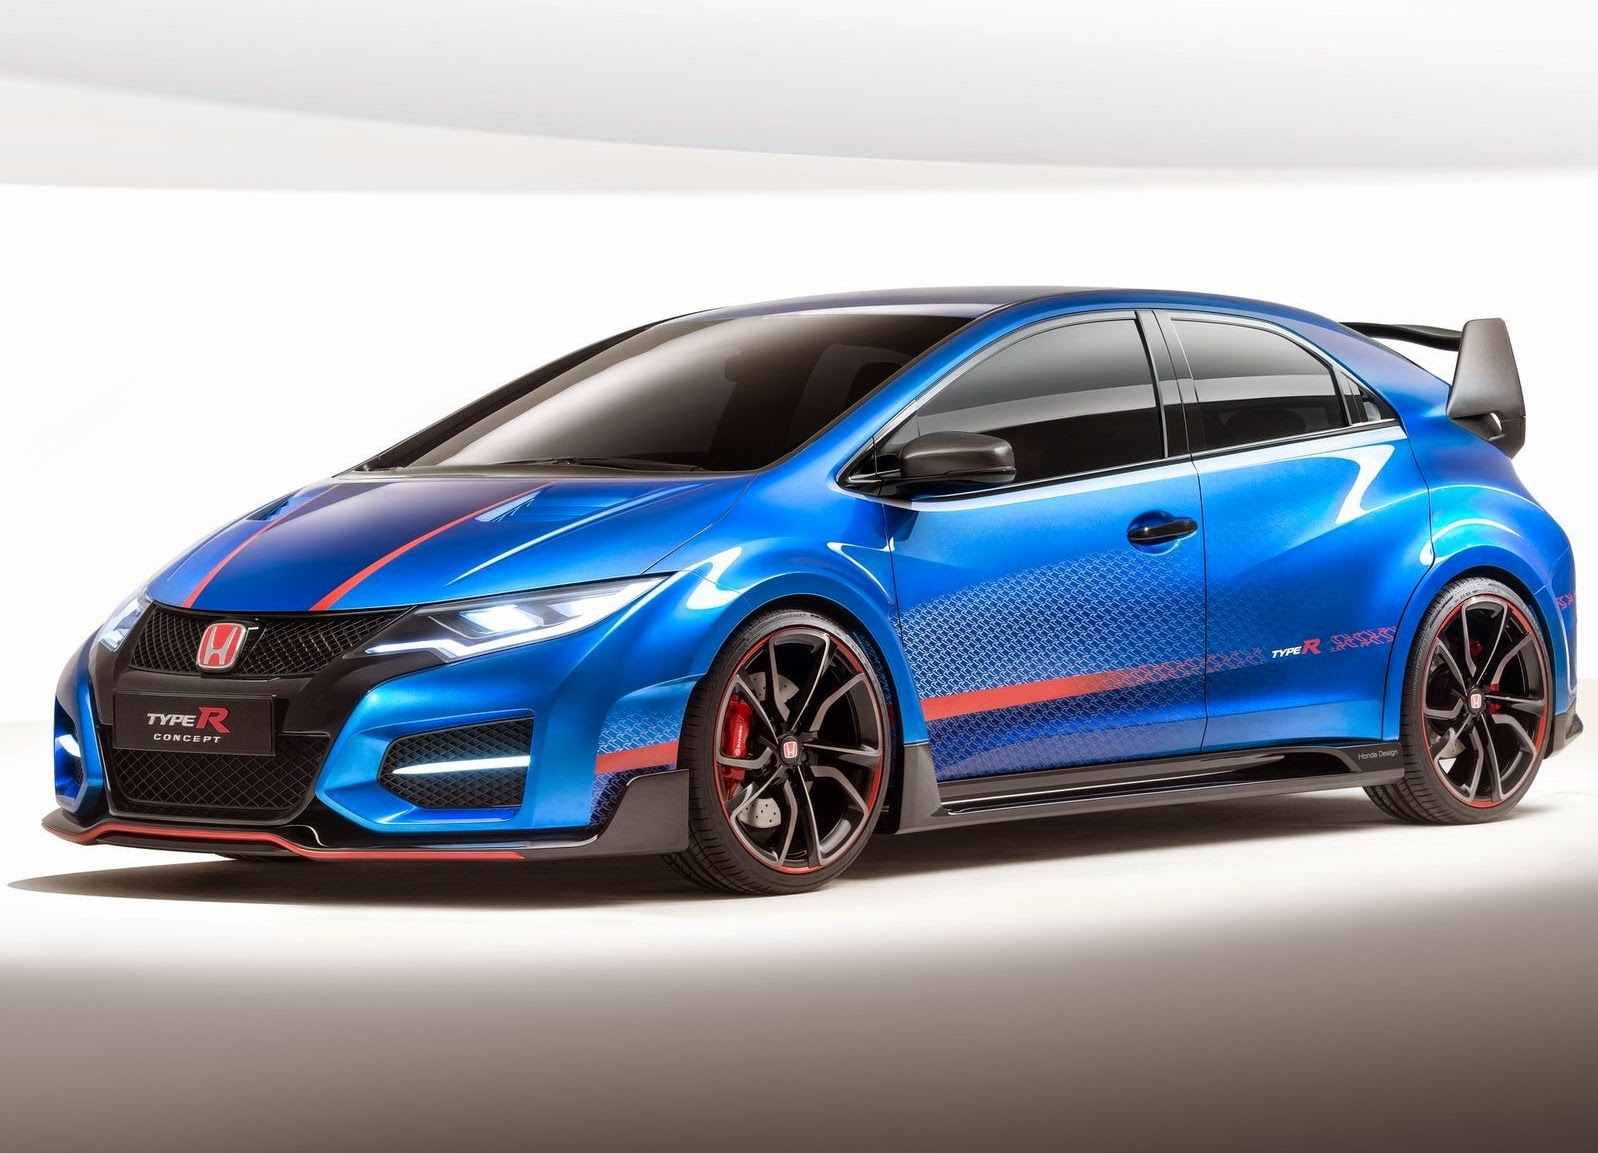 honda civic type r 2015 car hd wallpaper | classic car wallpaper hd